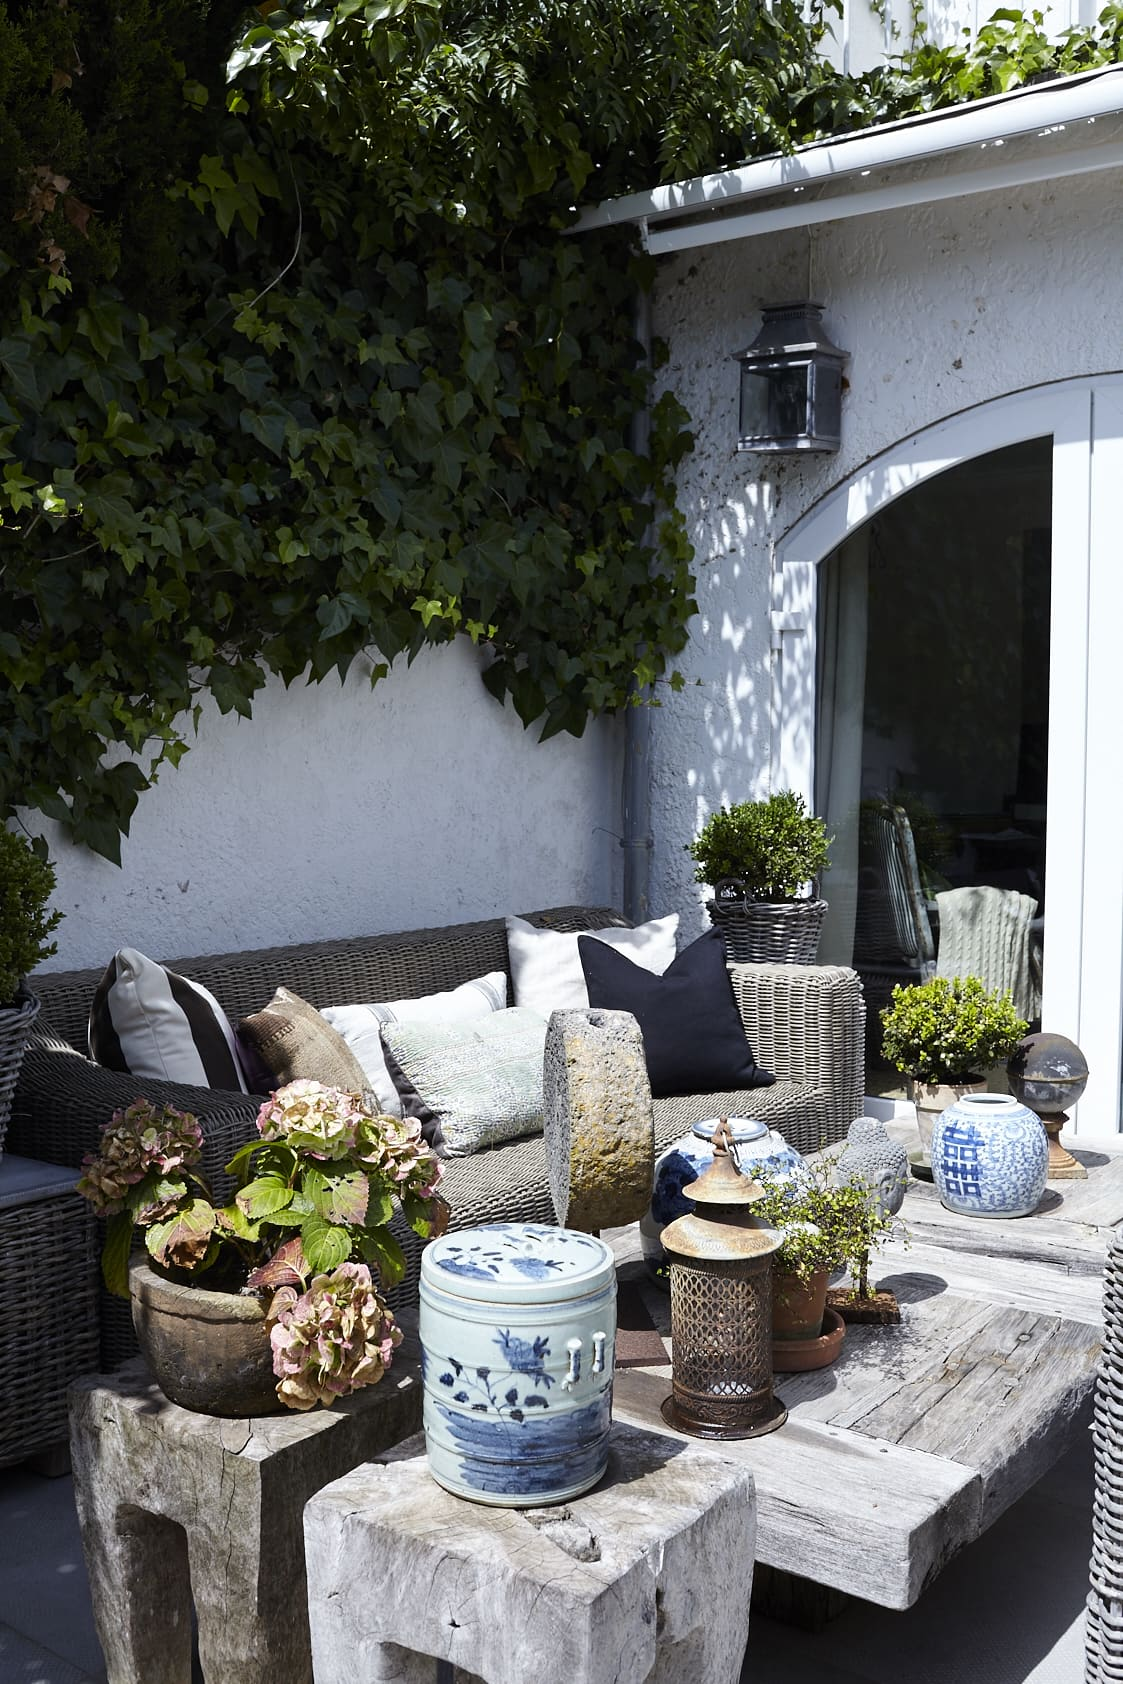 Thanks to details like blue and white porcelain, lanterns and statuettes, this courtyard feels like an outside living room. The wicker sofa and wooden tables were bought in Belgium.